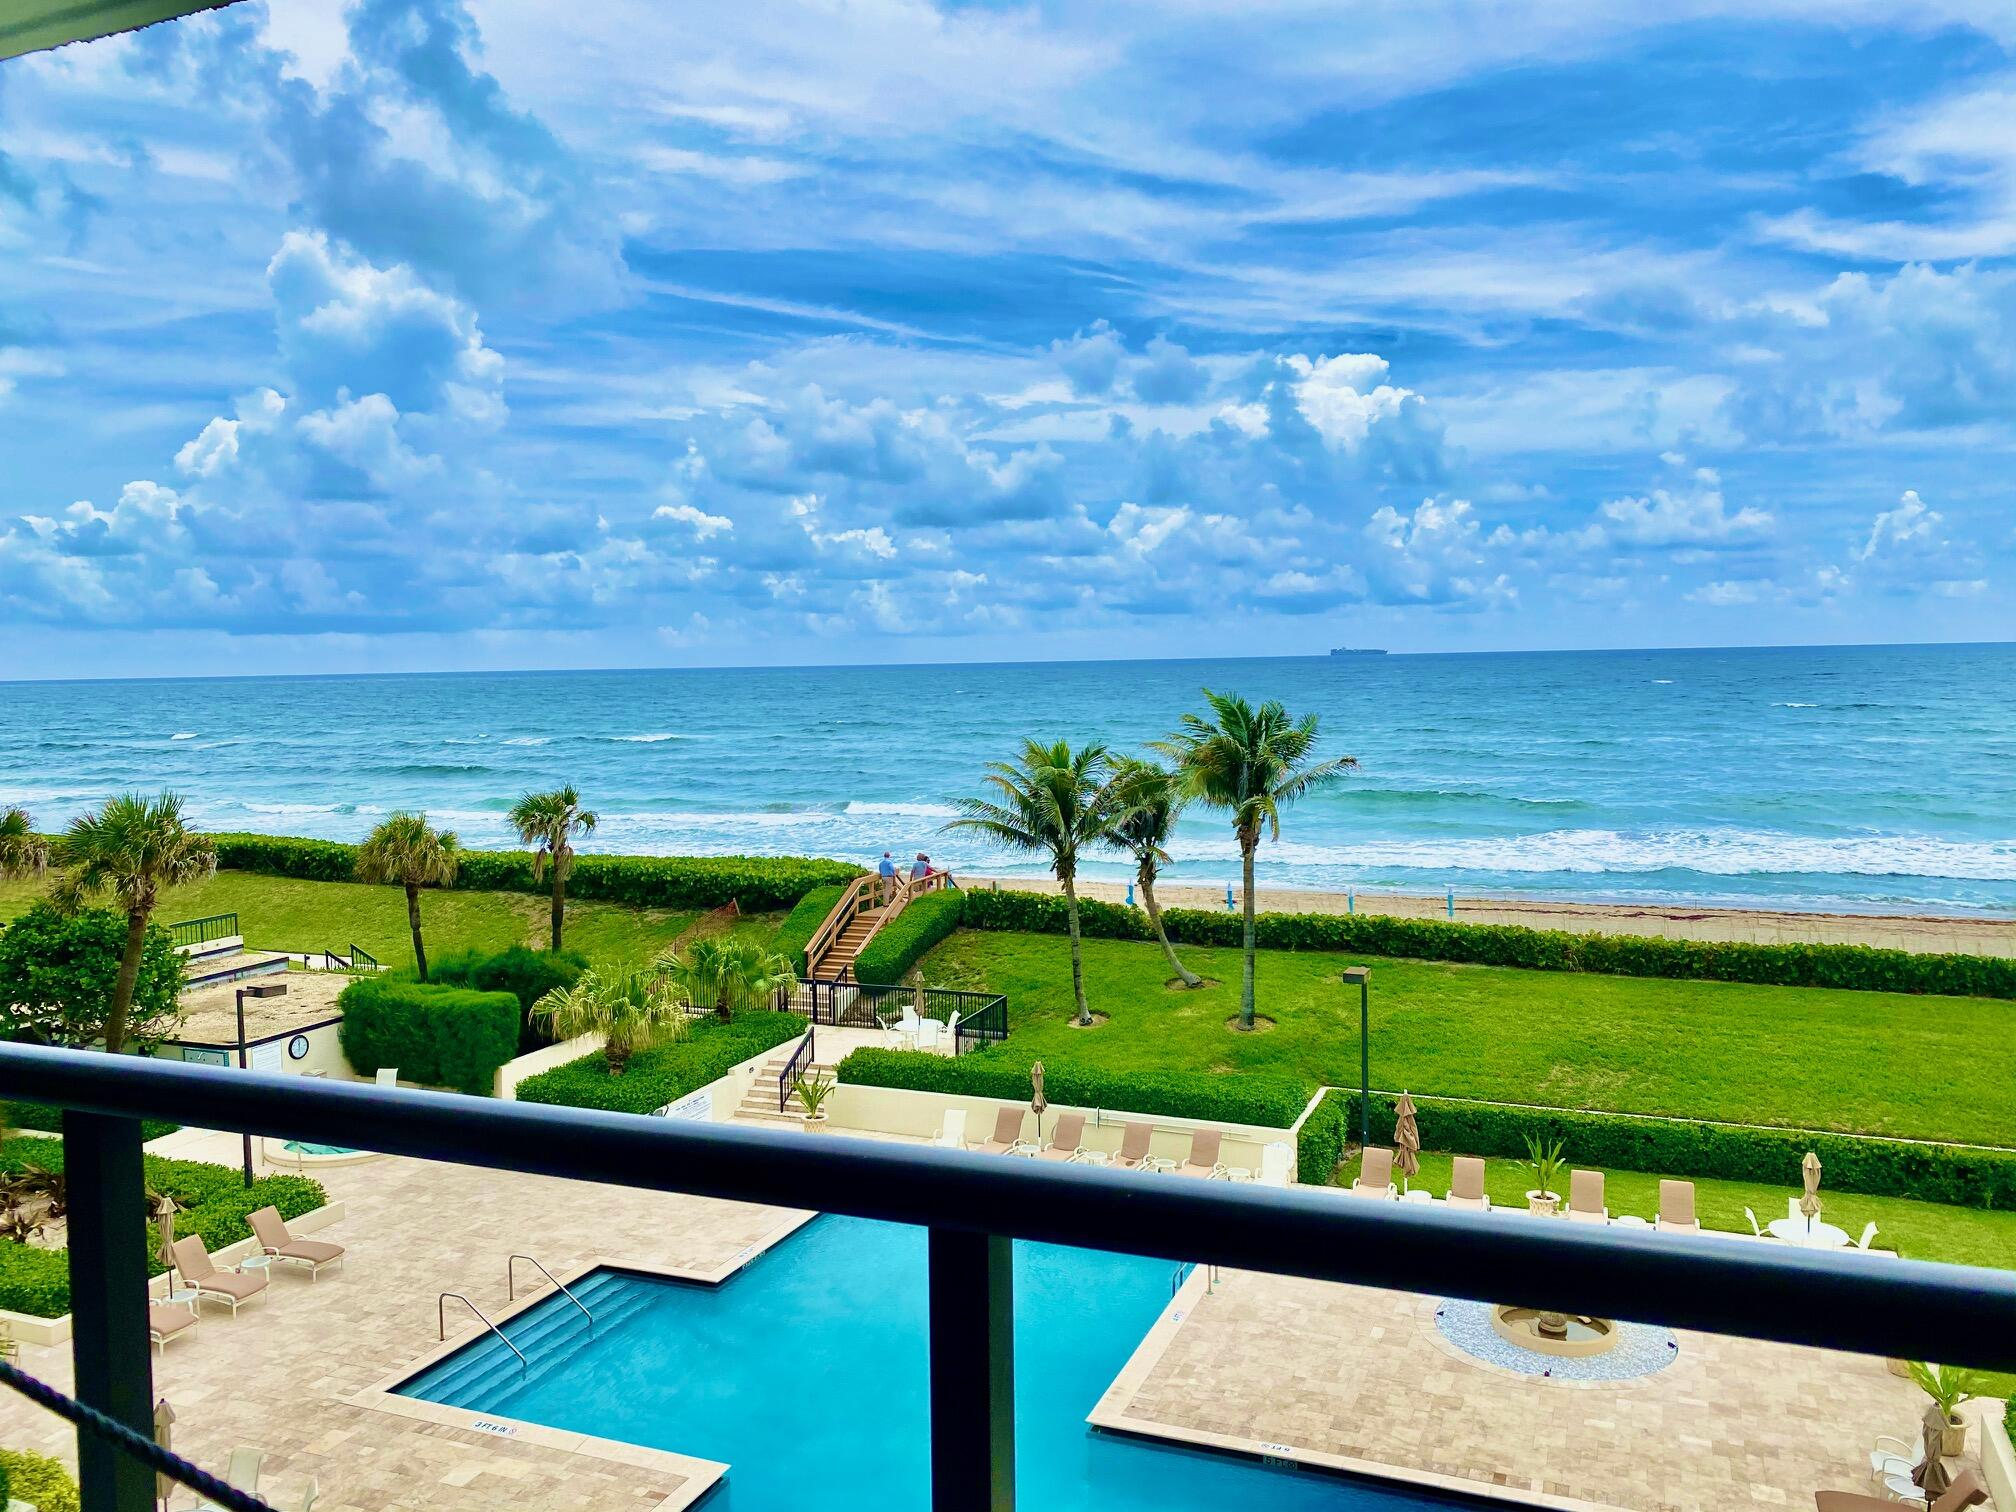 Fantastic Direct Ocean, 3 bedroom renovated condo! You can move right in, ASAP and the furniture is even negotiable.